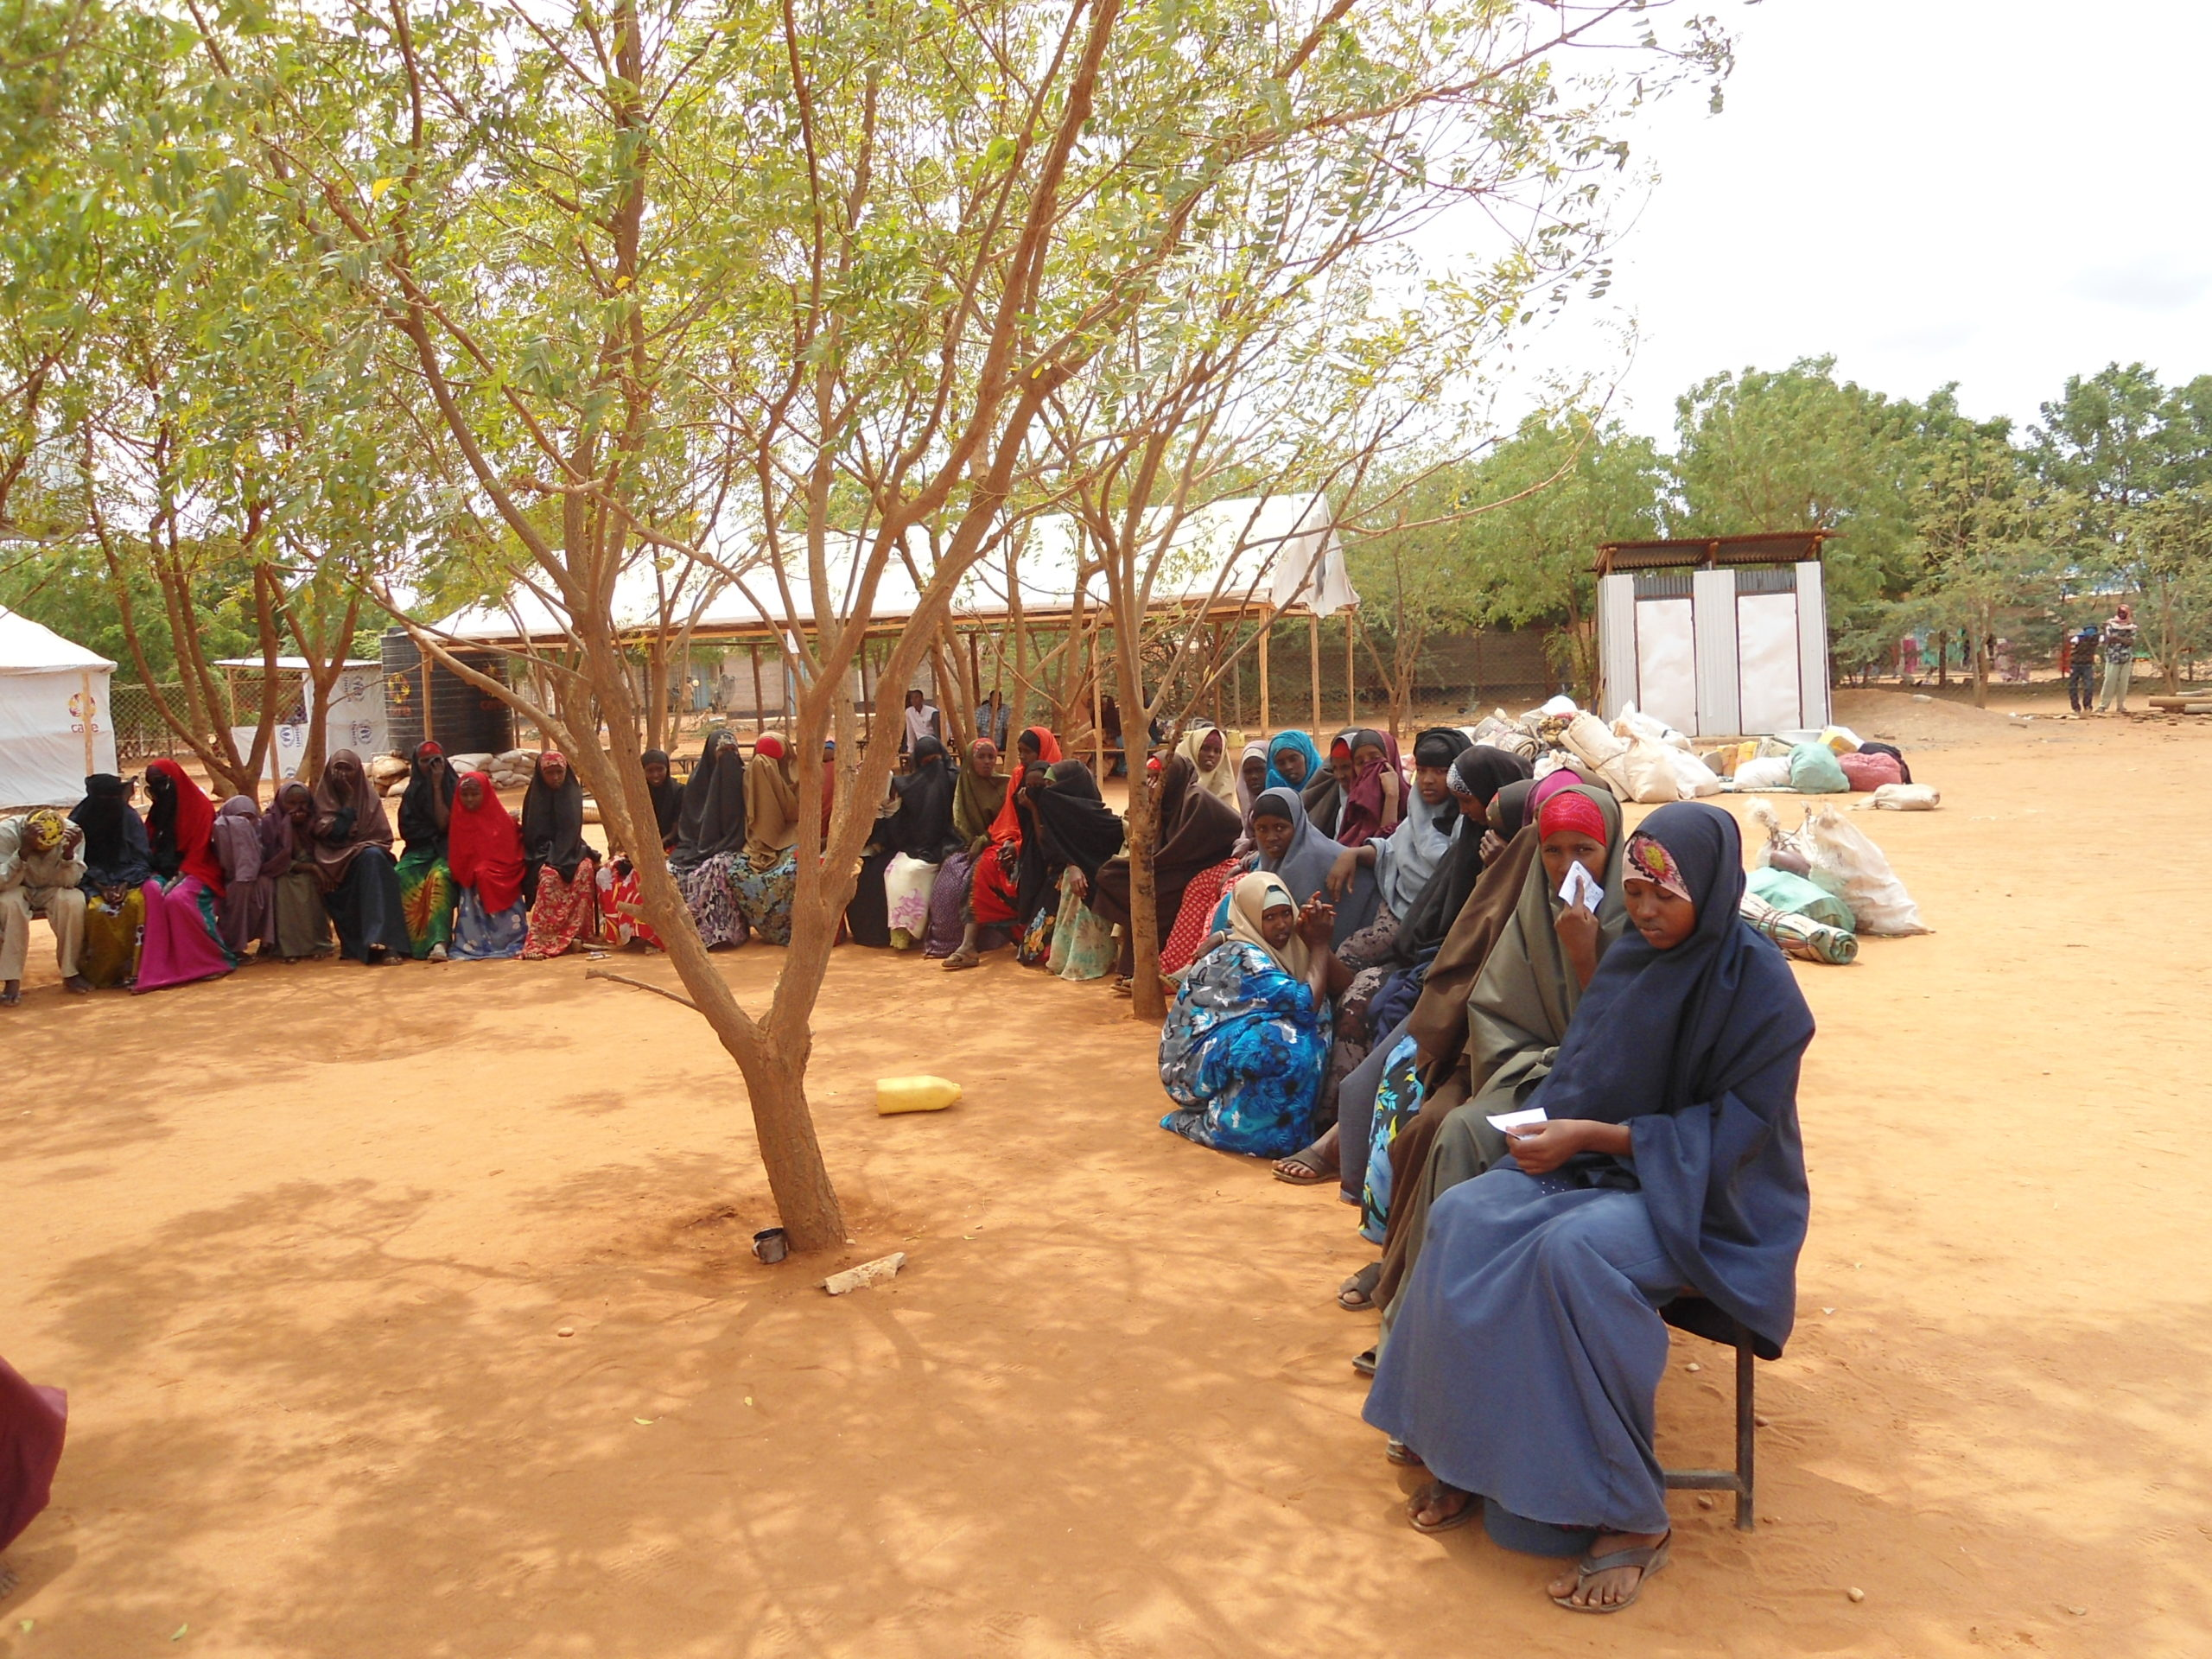 Statement: The closure of the refugee camps in Kenya will have catastrophic consequences